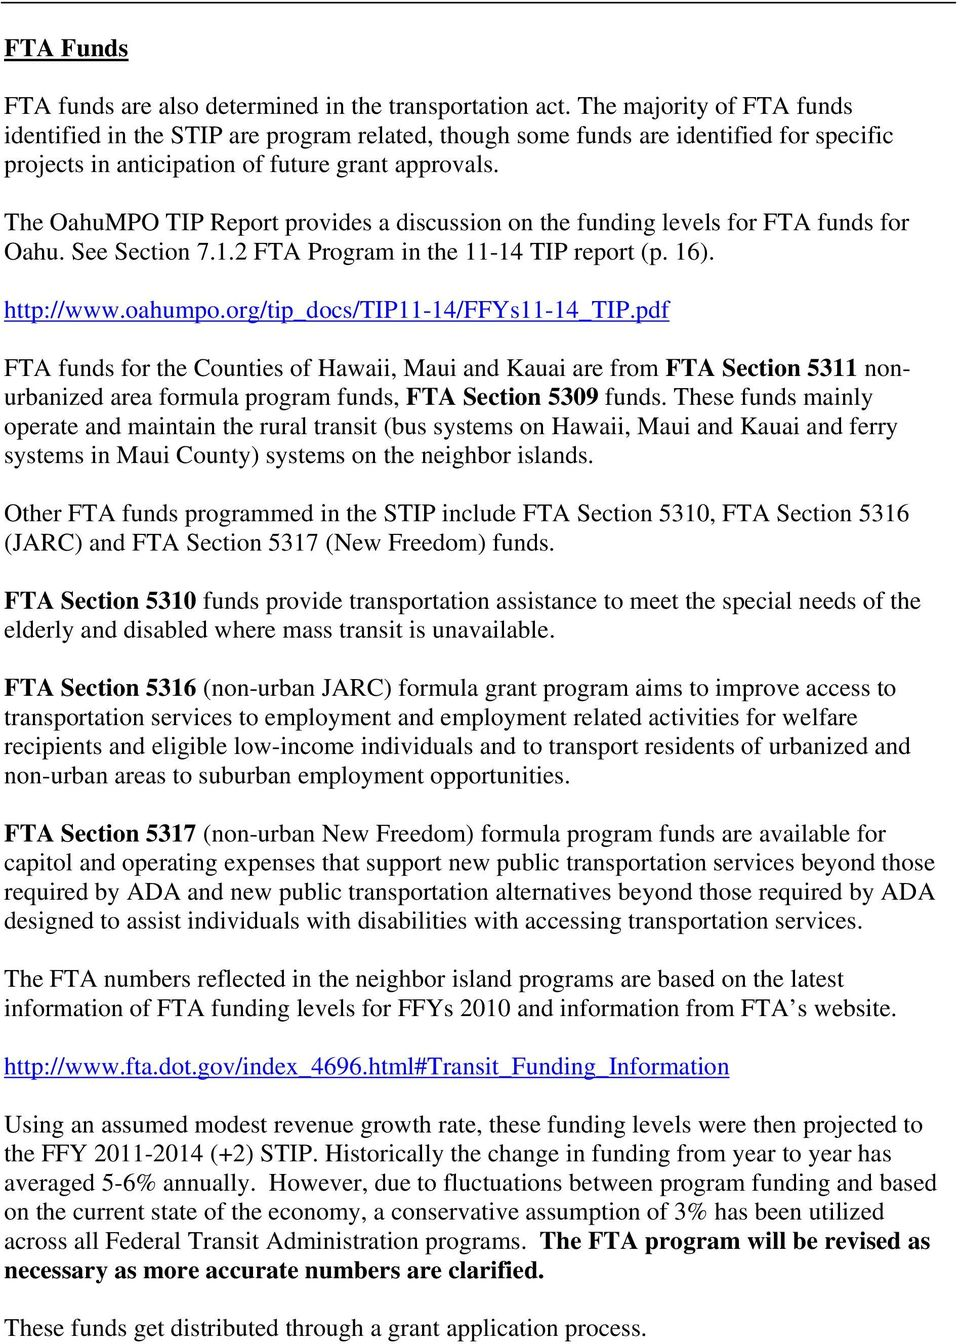 The OahuMPO TIP Report provides a discussion on the funding levels for FTA funds for Oahu. See Section 7.1.2 FTA Program in the 11-14 TIP report (p. 16). http://www.oahumpo.